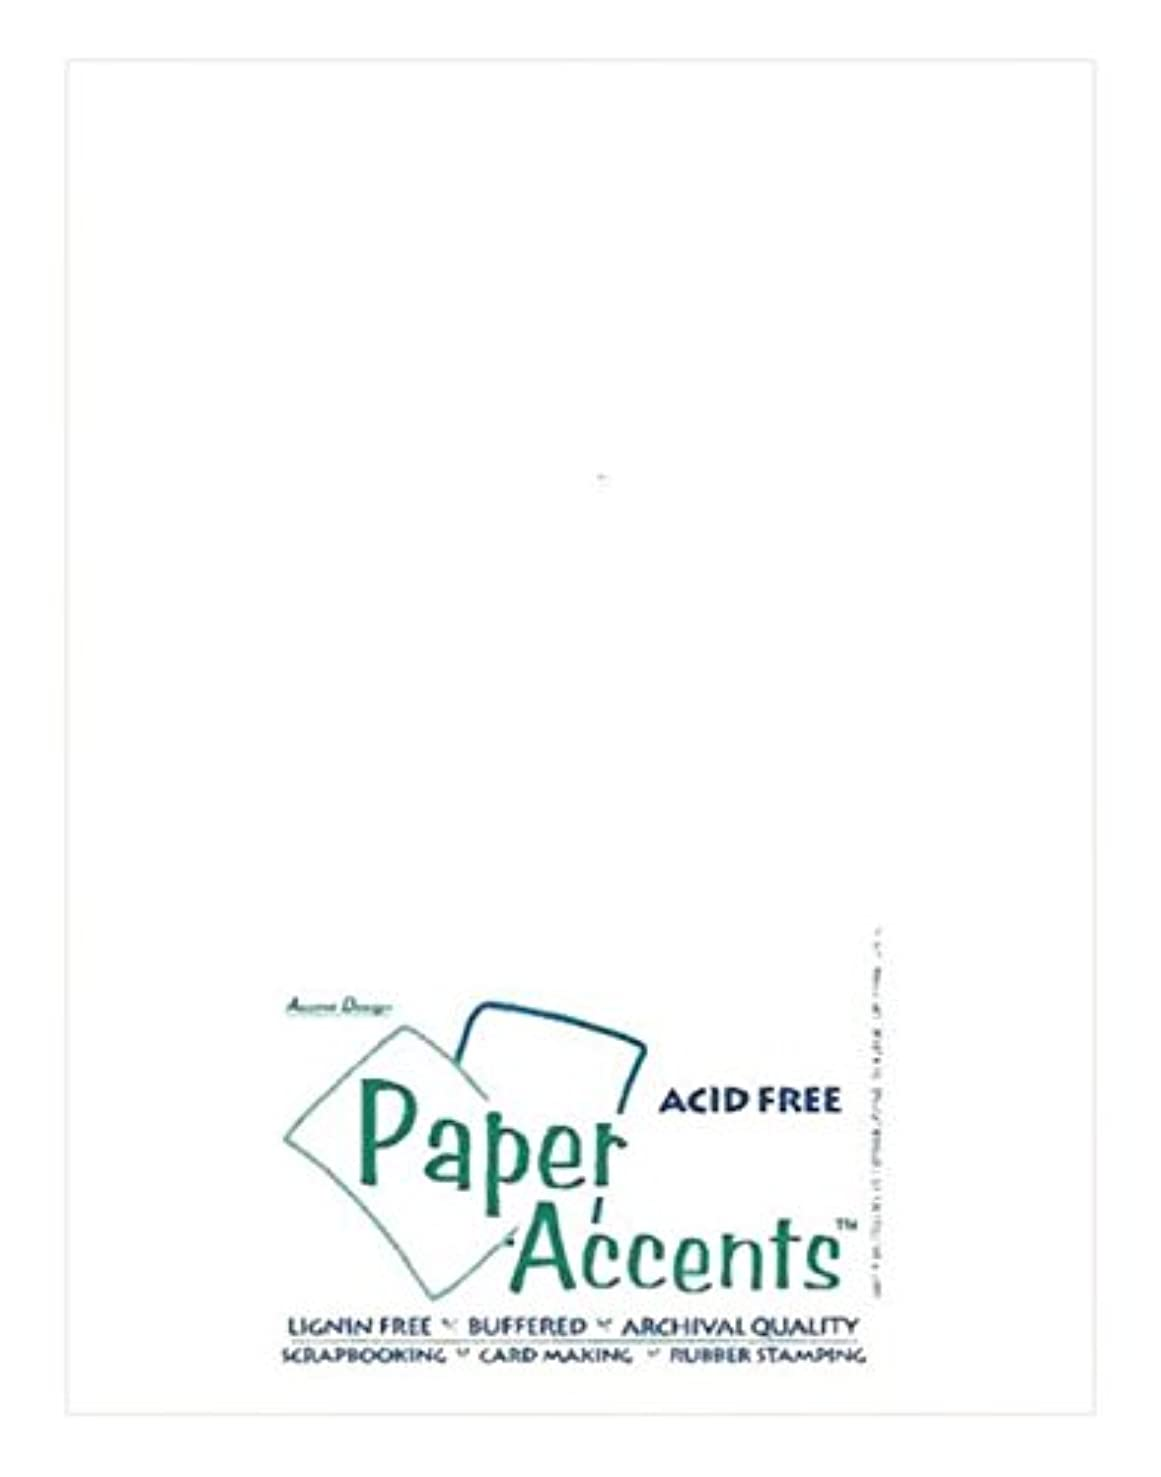 Accent Design Paper Accents Cdstk Smooth 8.5x11 65# White Bulk